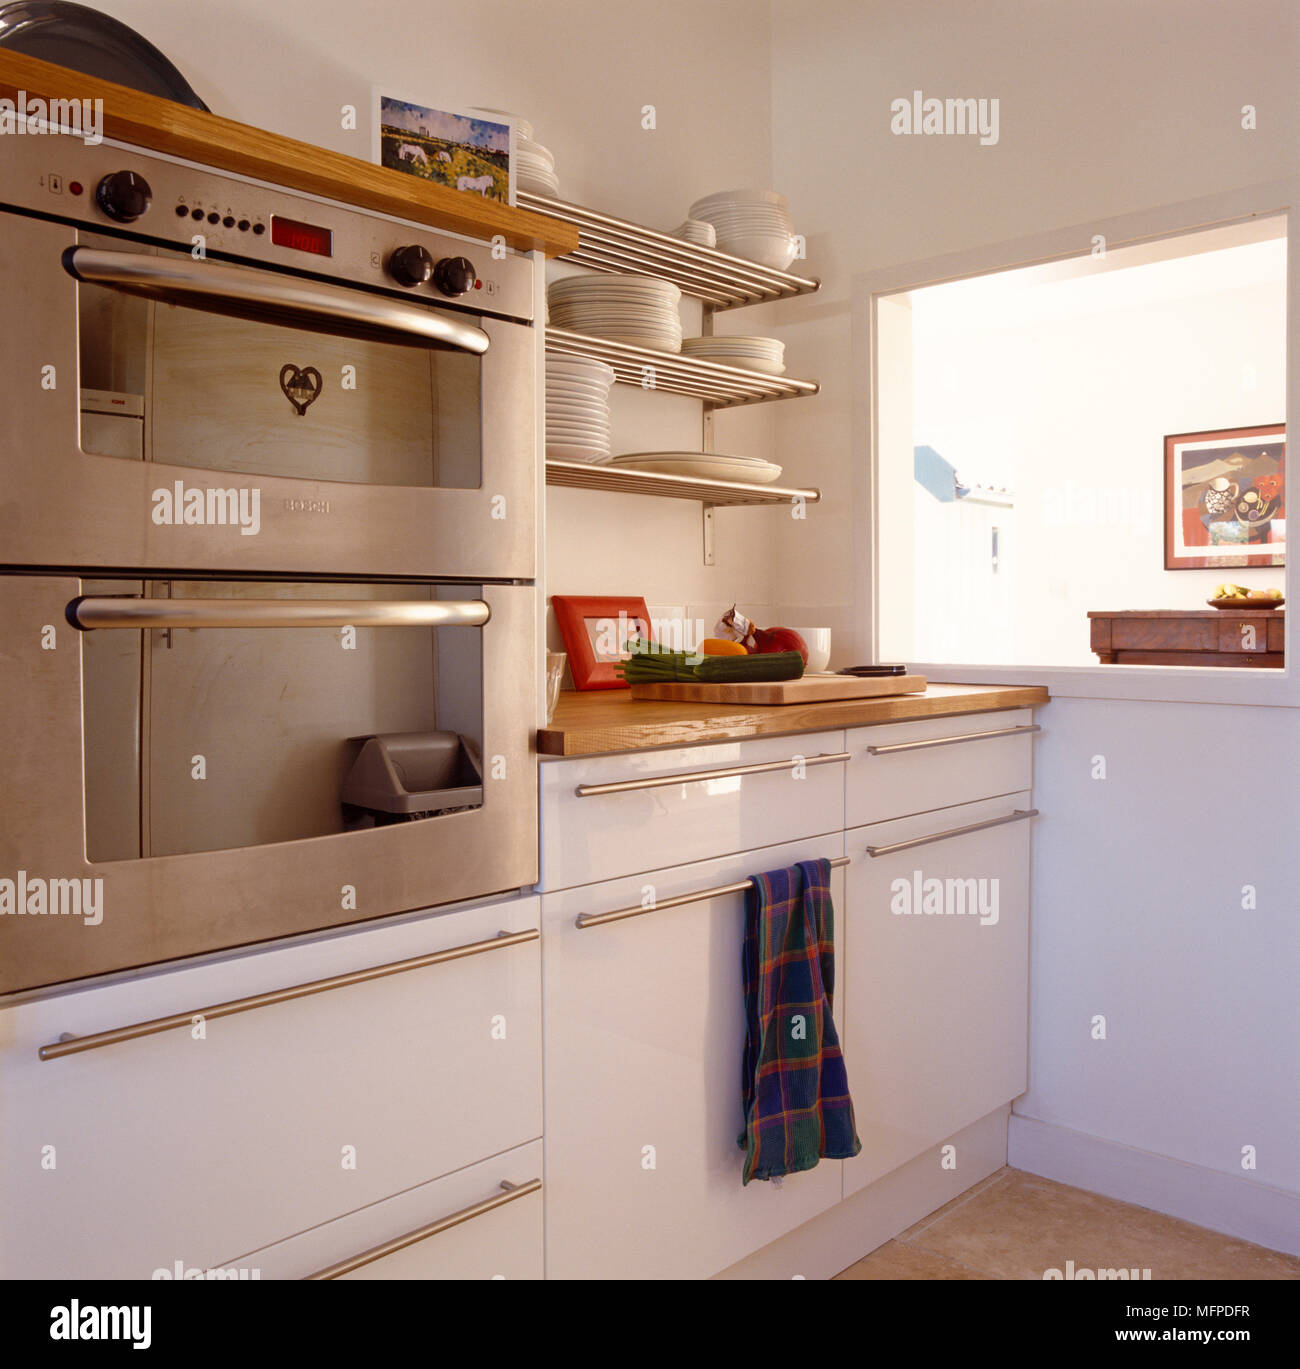 Kitchen With Wooden And Stainless Steel Cabinets Appliances